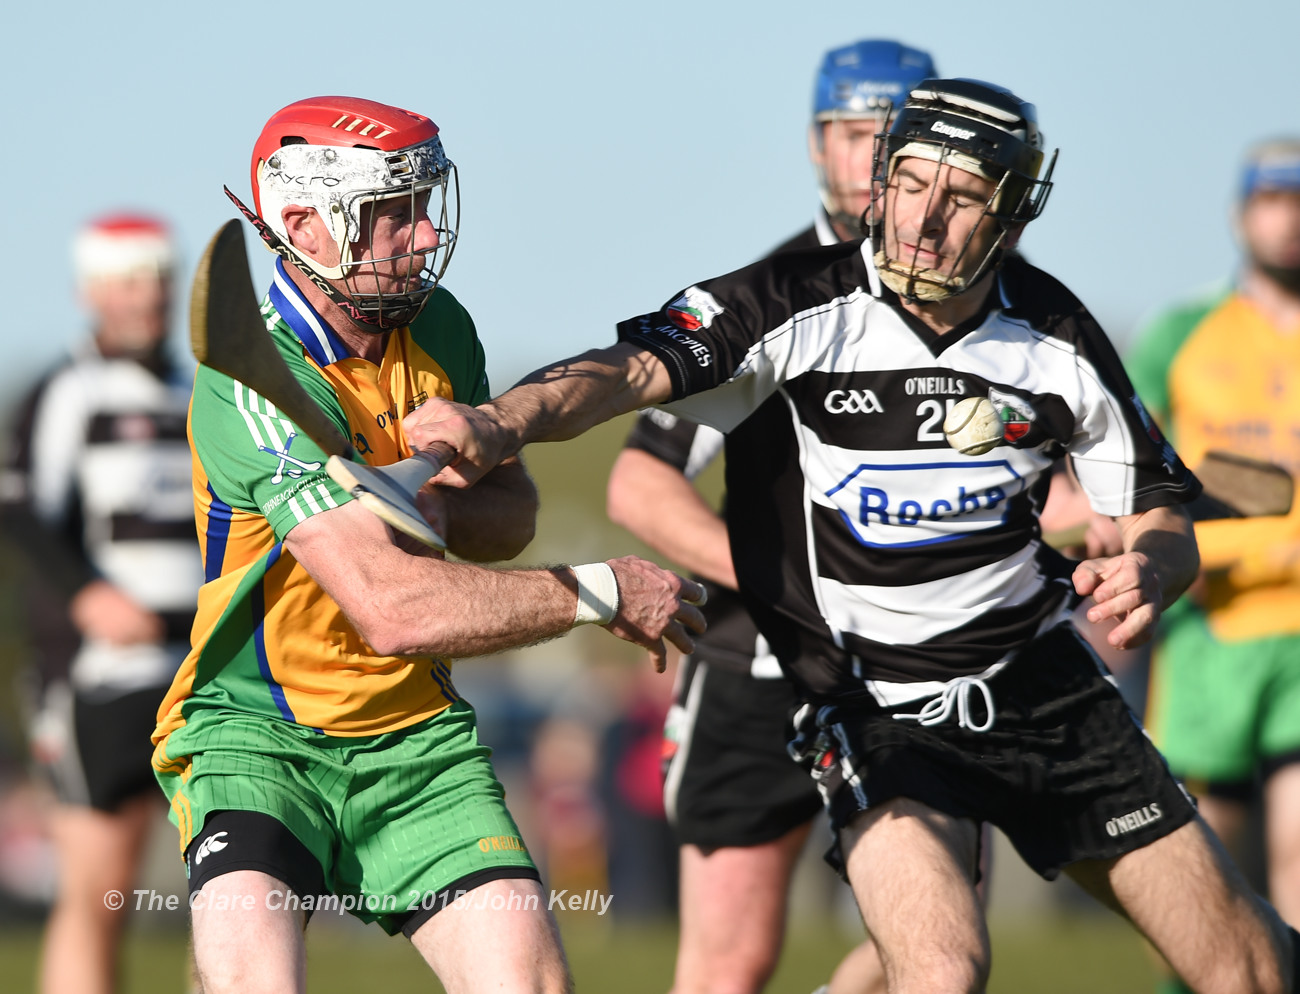 Dermot Lynch of Inagh-Kilnamona in action against Eric Flynn of Clarecastle during their Clare Champion Cup game in Inagh. Photograph by John Kelly.